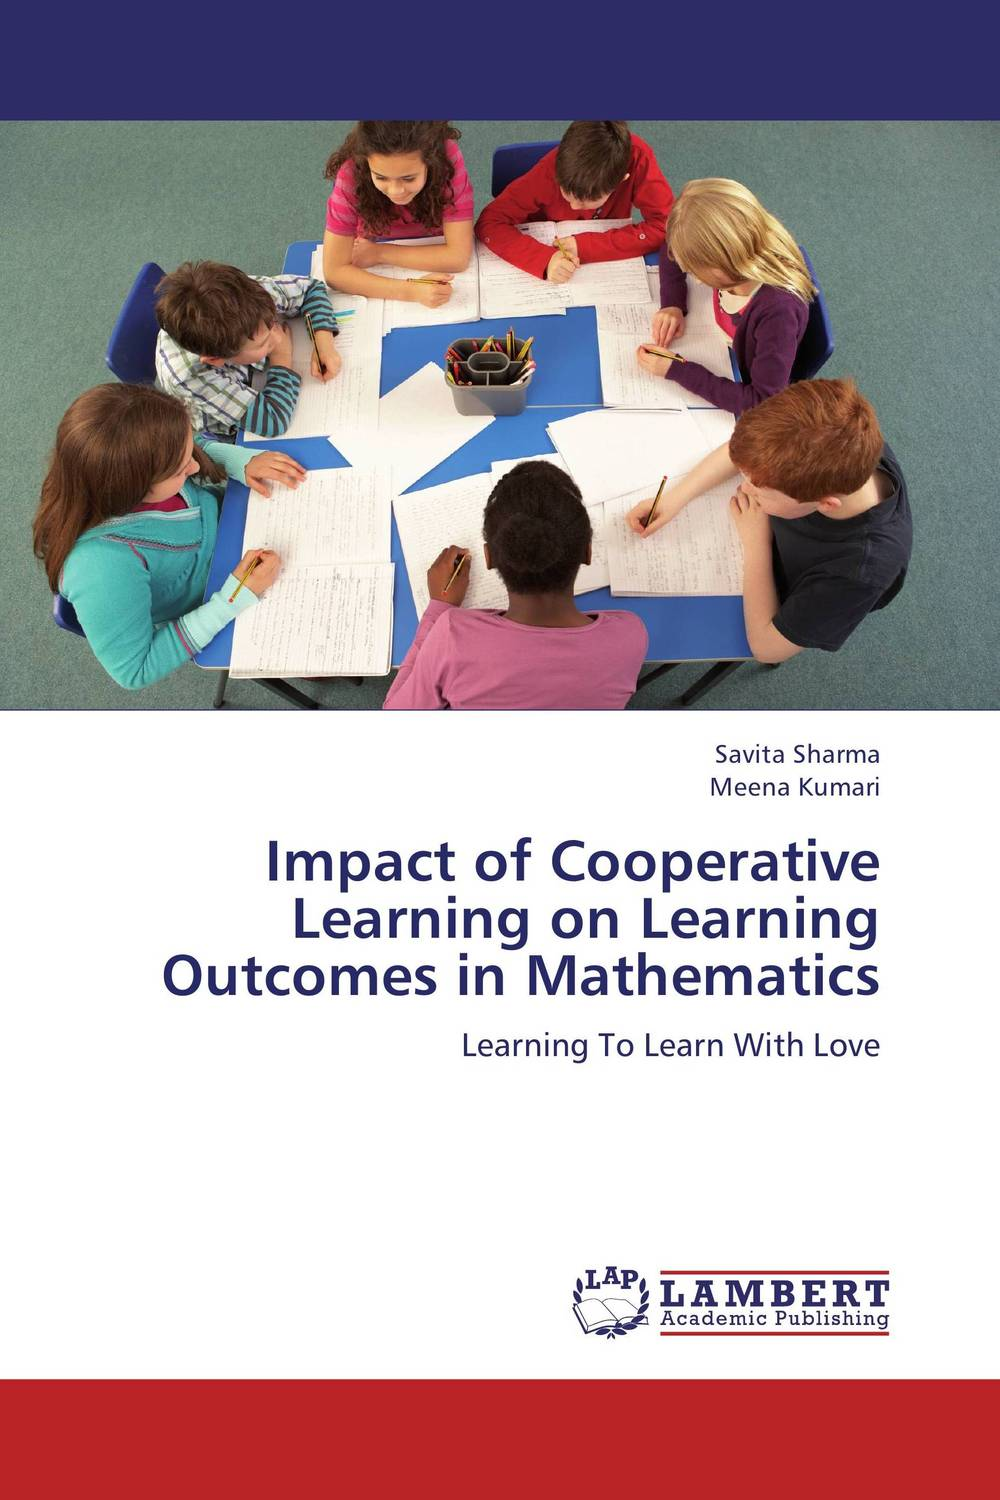 Impact of Cooperative Learning on Learning Outcomes in Mathematics impact of competitive and cooperative learning environment on students